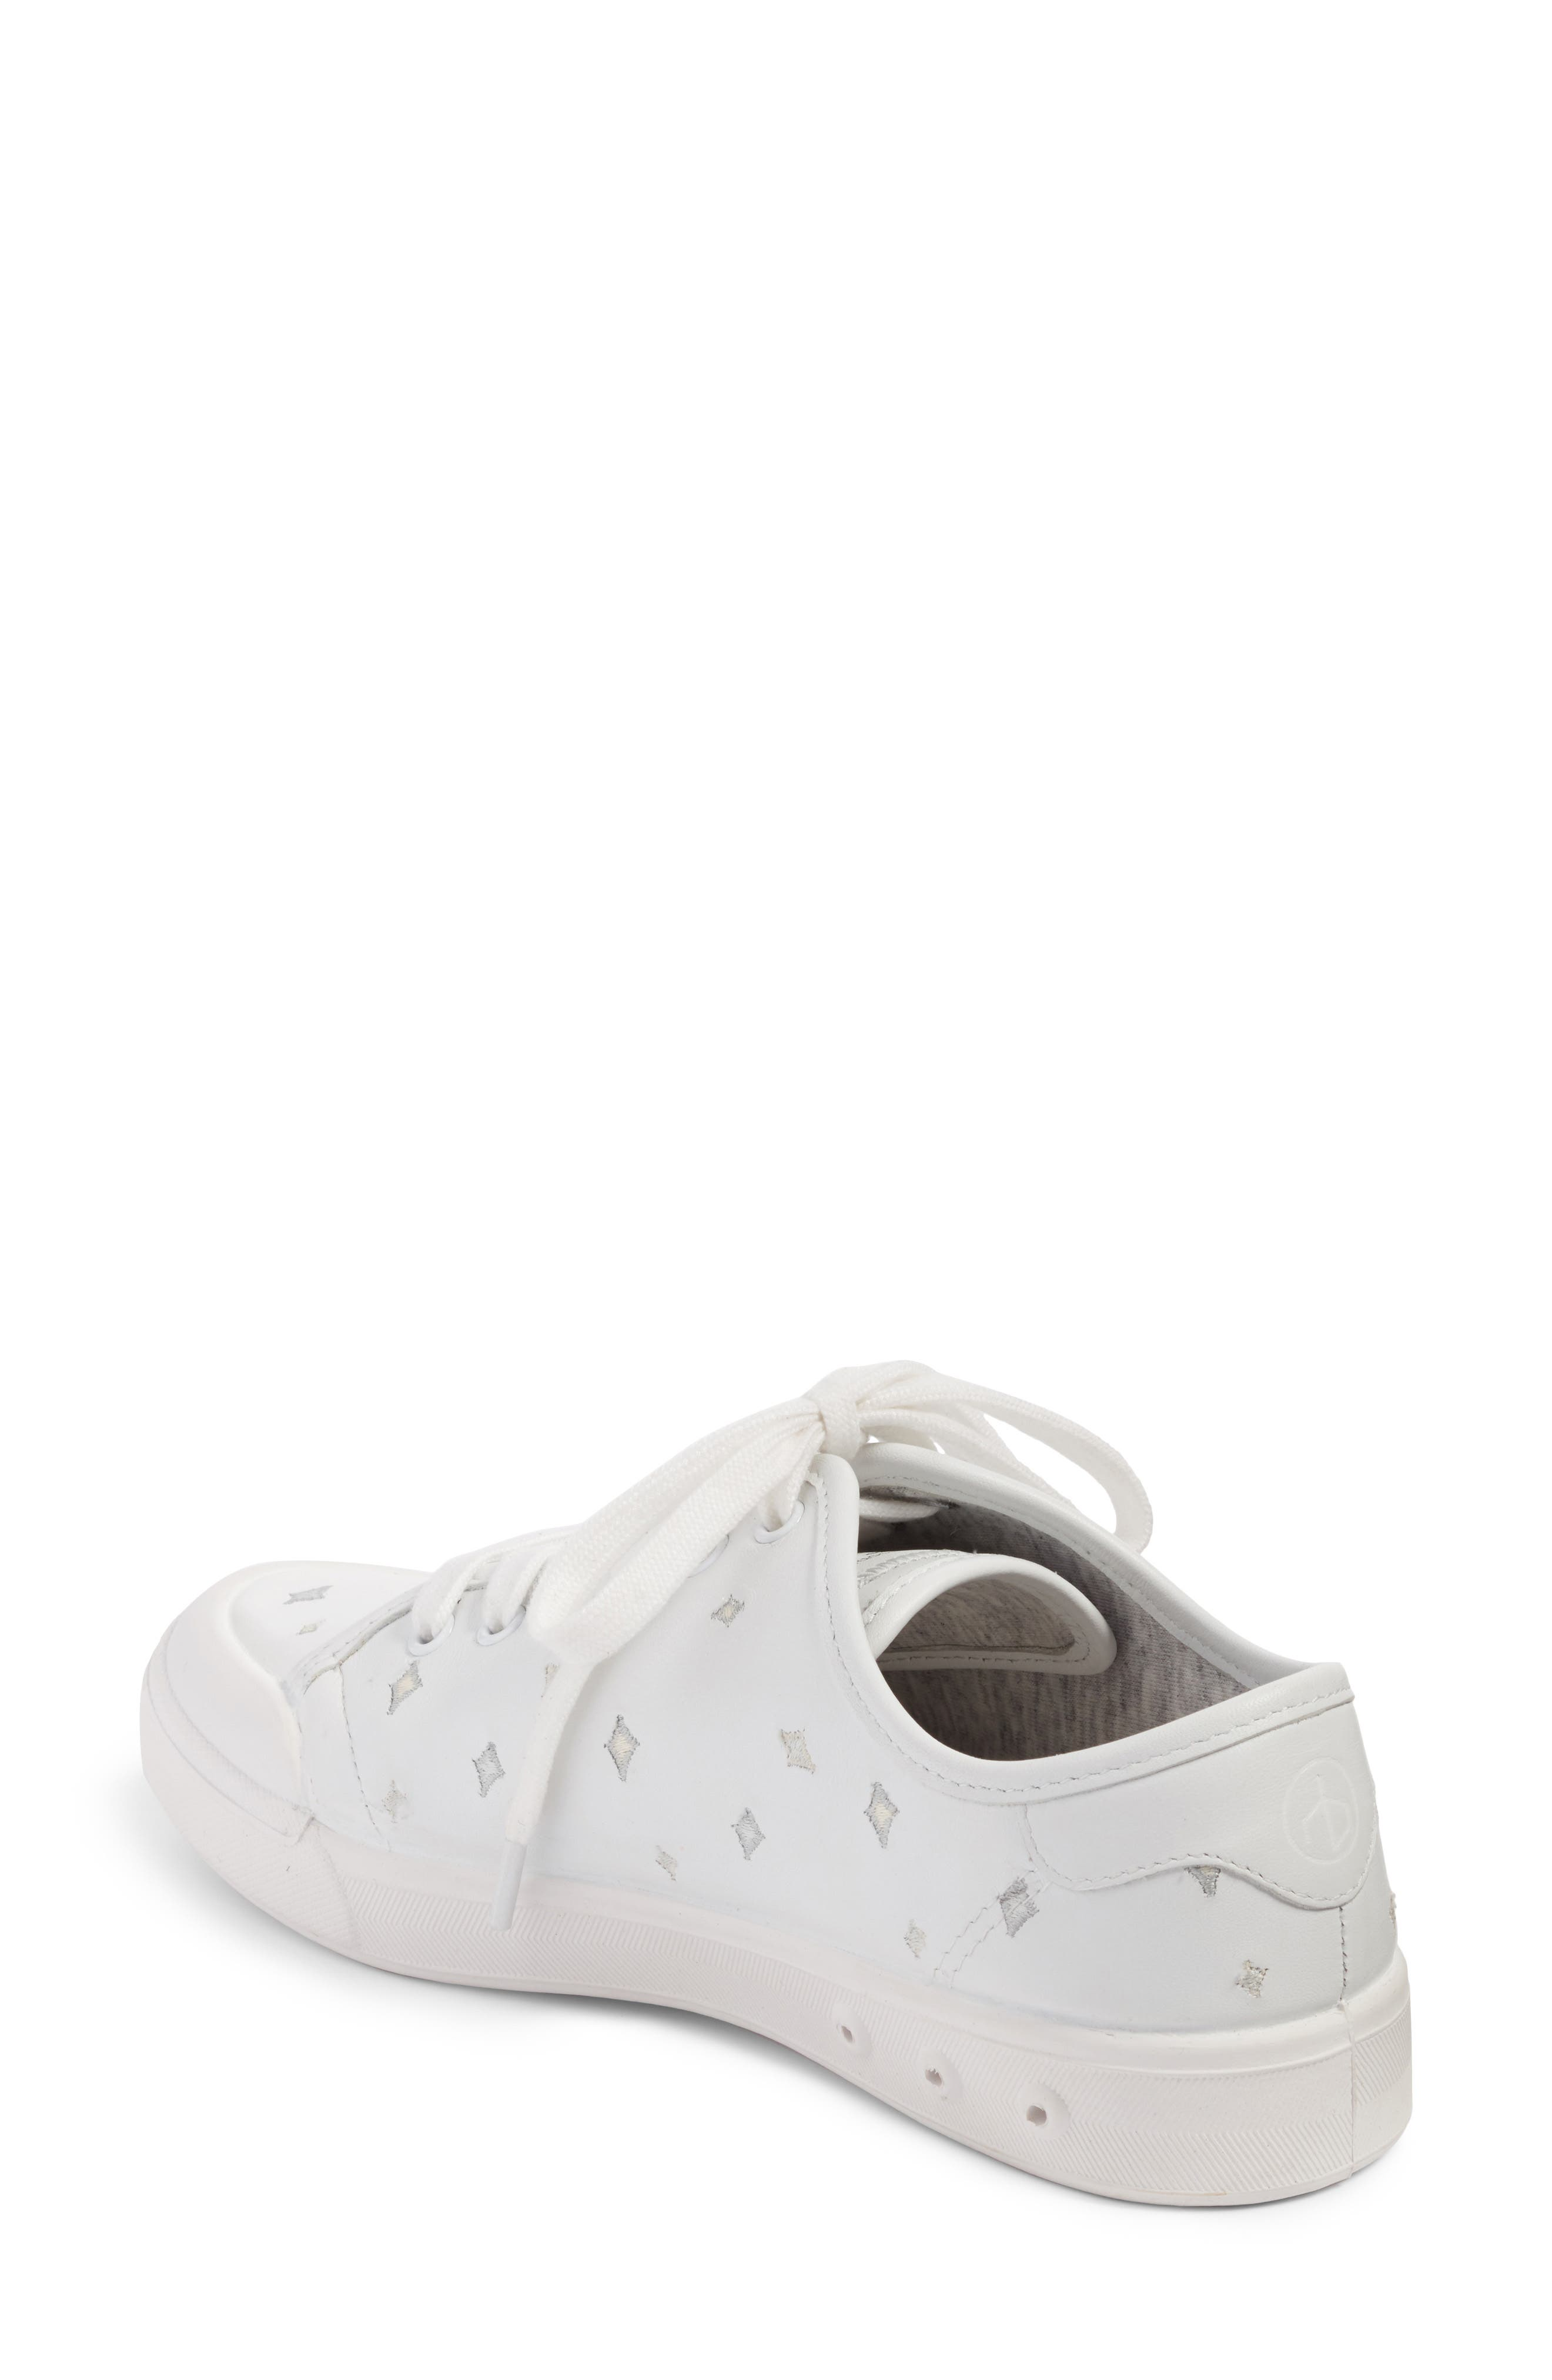 Embroidered Standard Issue Sneaker,                             Alternate thumbnail 2, color,                             White Leather Embroidery